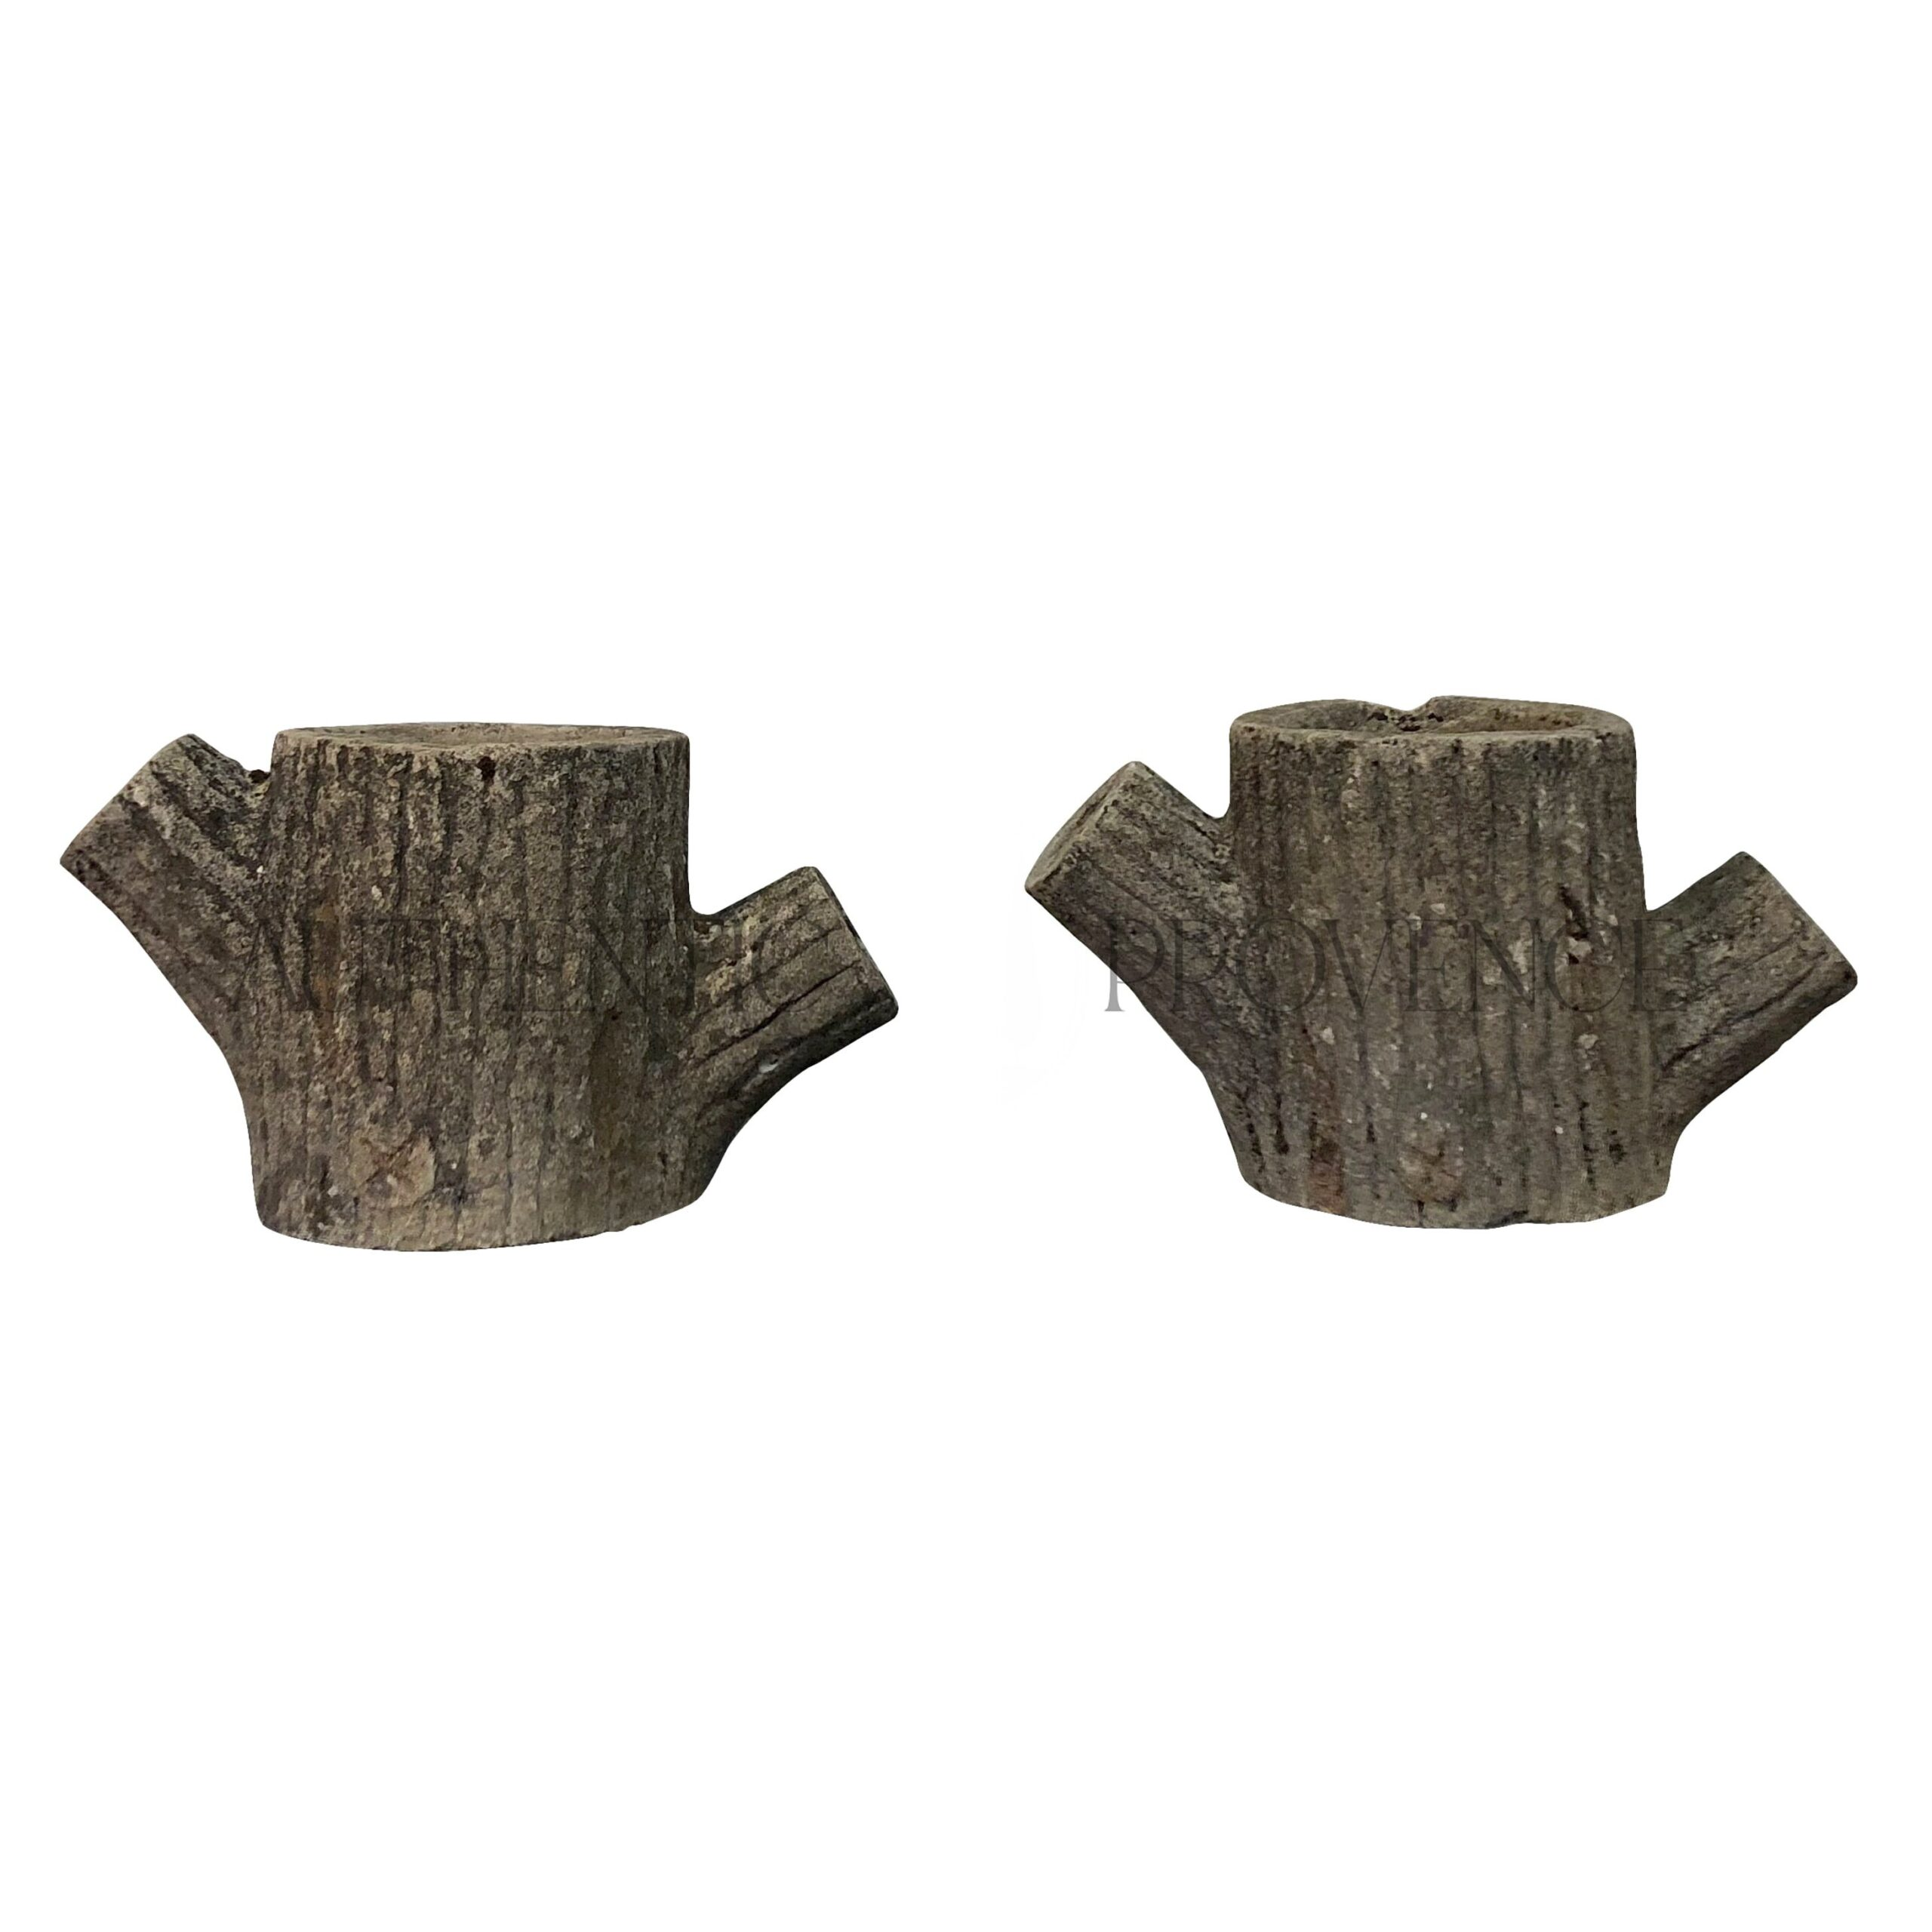 Pair of Vintage Faux Bois Planters